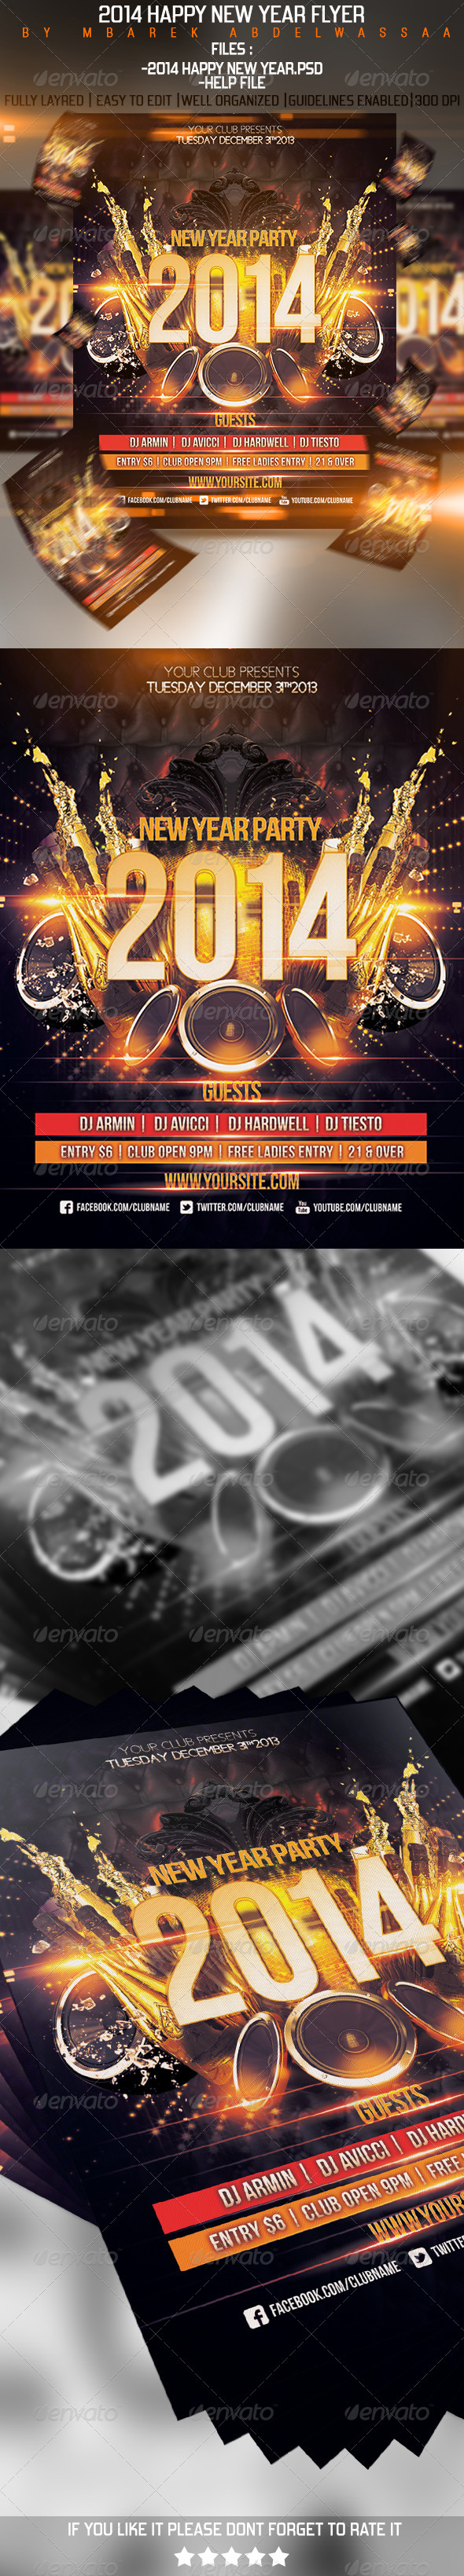 2014 Happy New Year Flyer